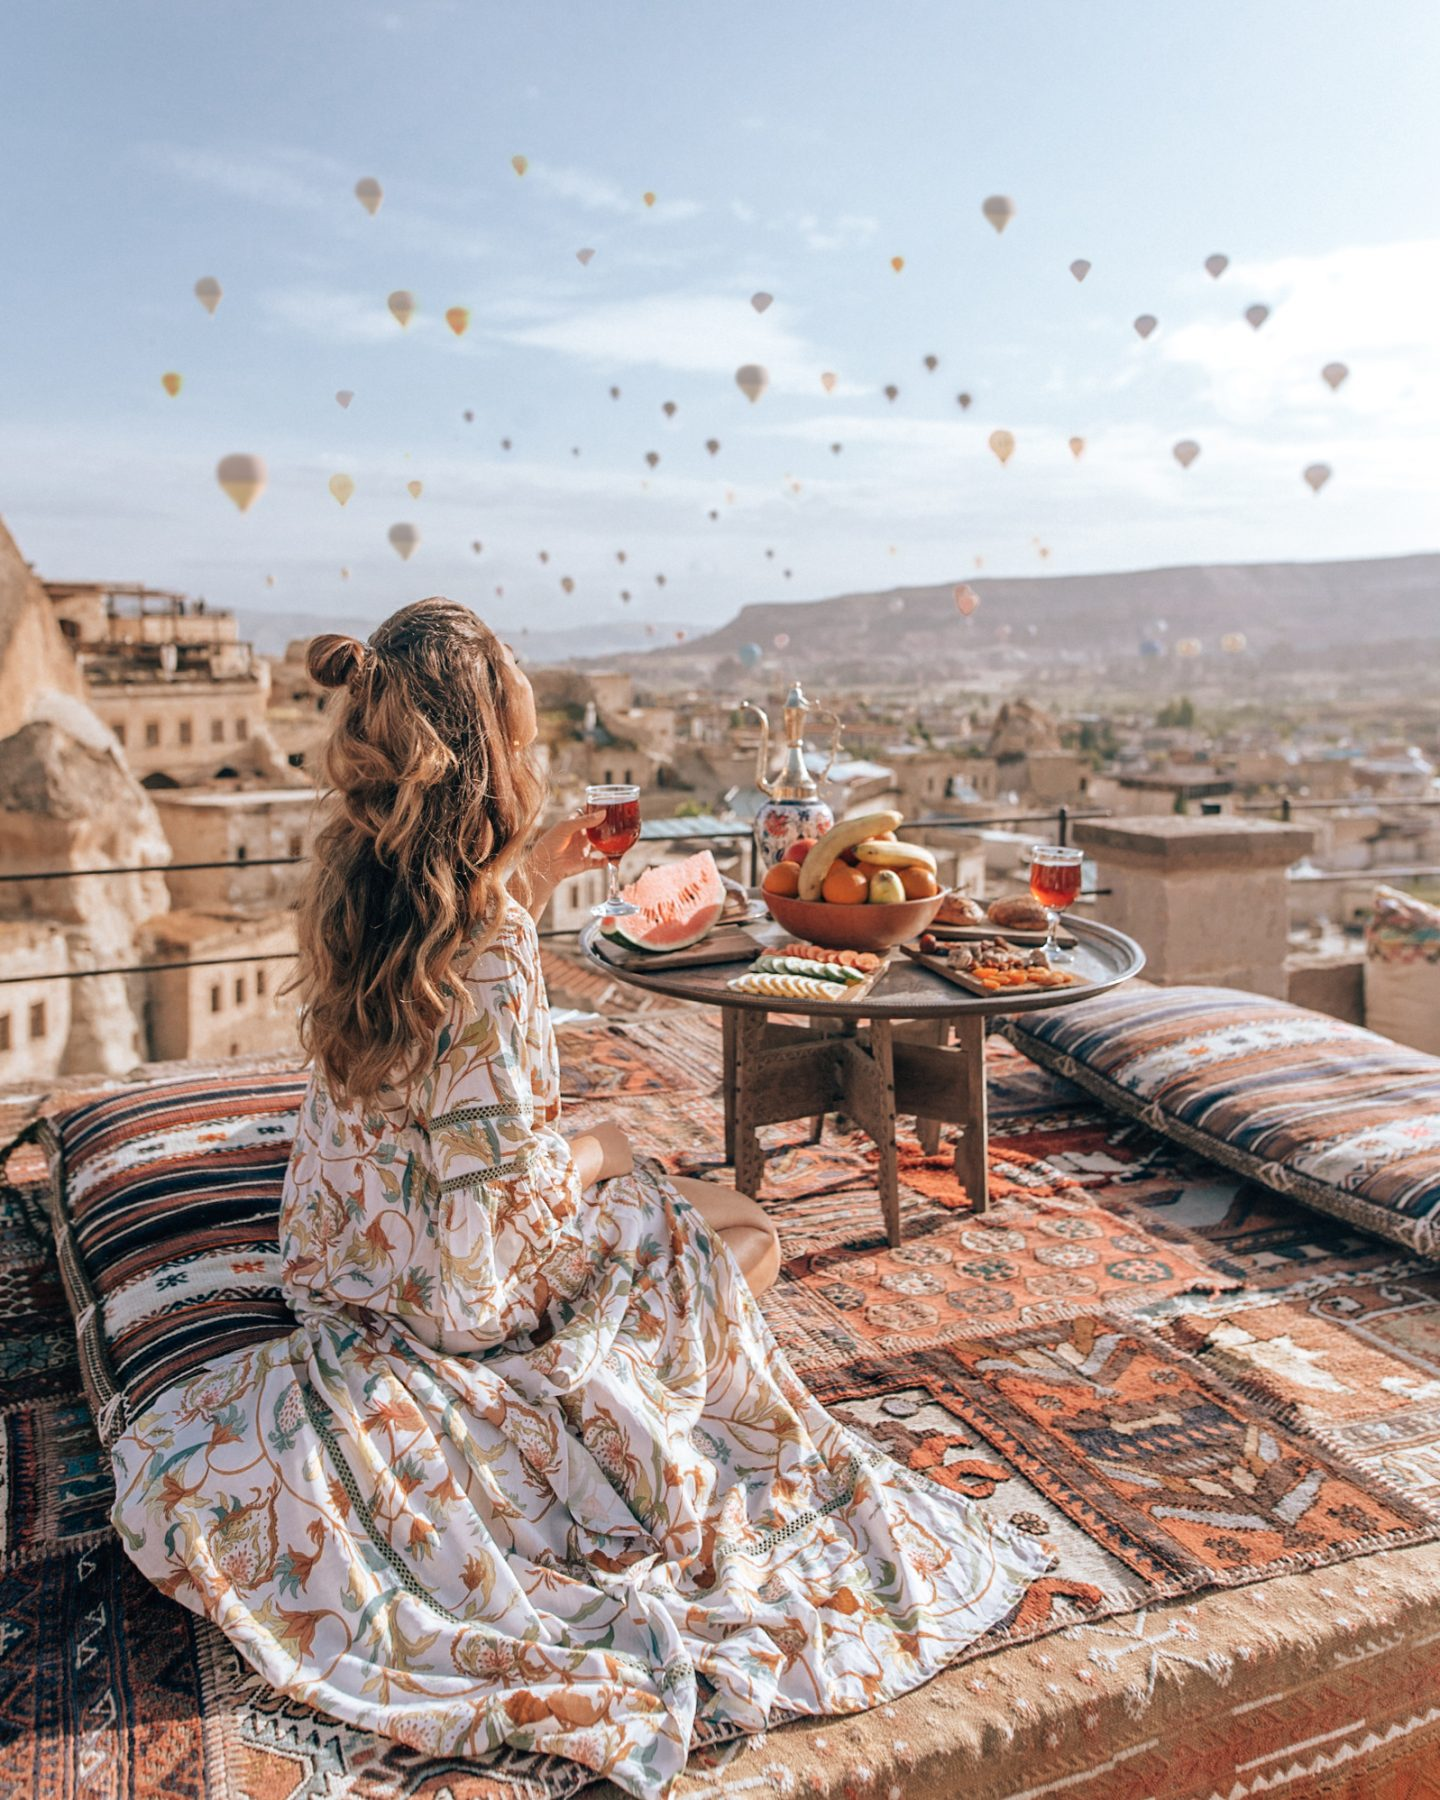 Photo Guide: Best Spots in Cappadocia